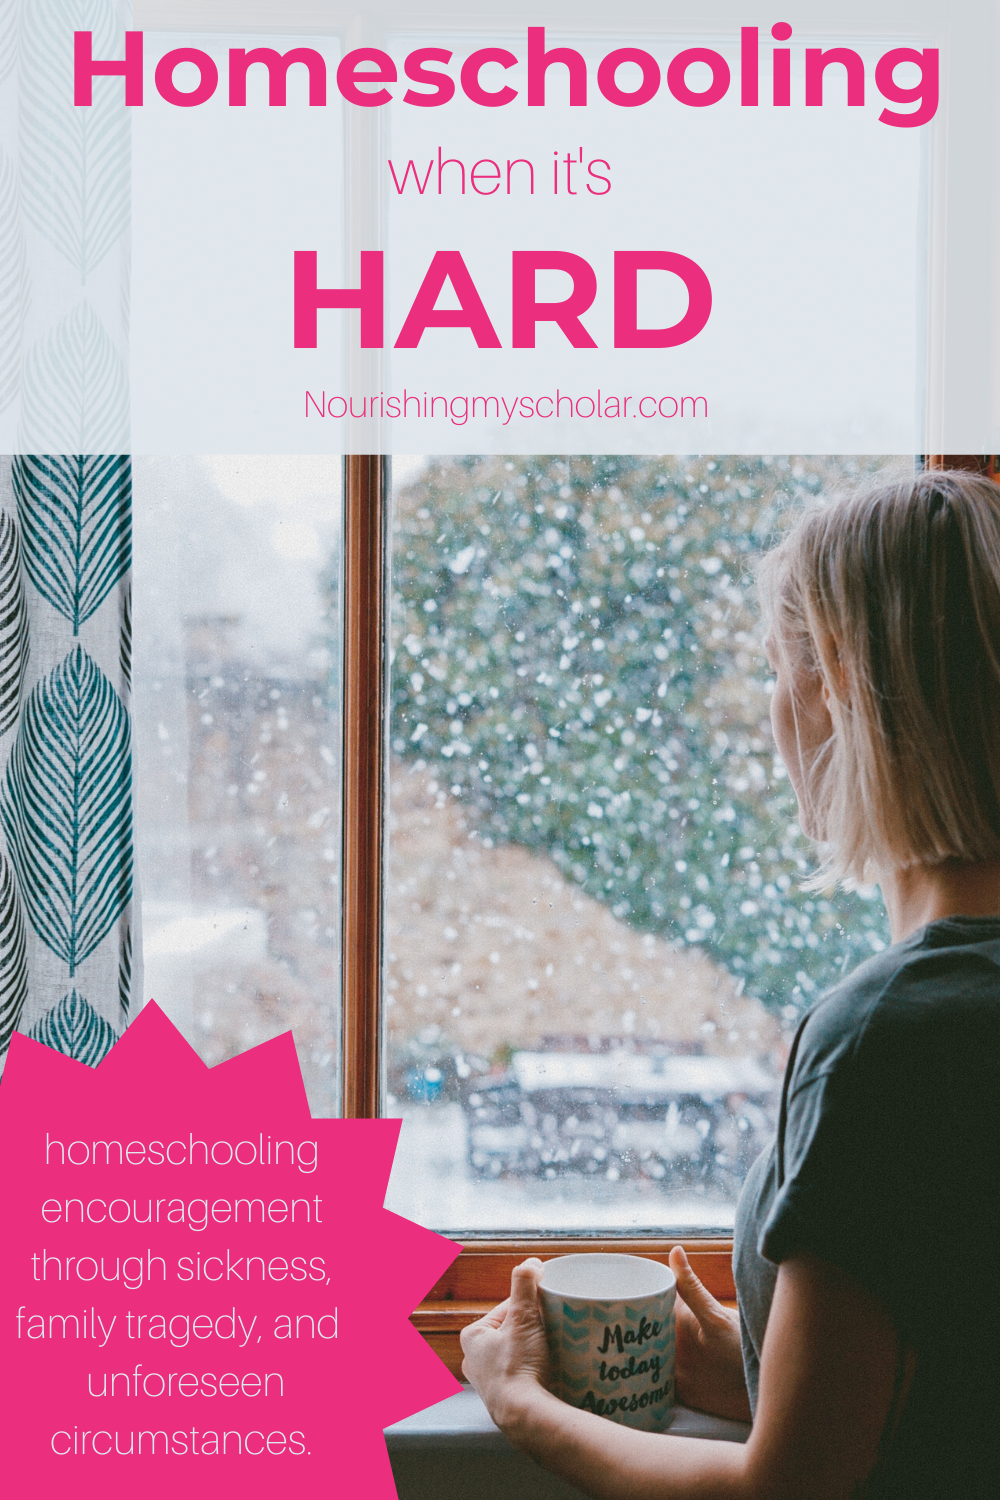 Homeschooling When it's Hard: The only way to approach hard homeschool days is to approach them one day at a time.  Try to stay present with your kiddos. Choose to connect with them every chance you get. #homeschool #homeschooling #homelearning #homeeducation #homeschoolmom #learningathome